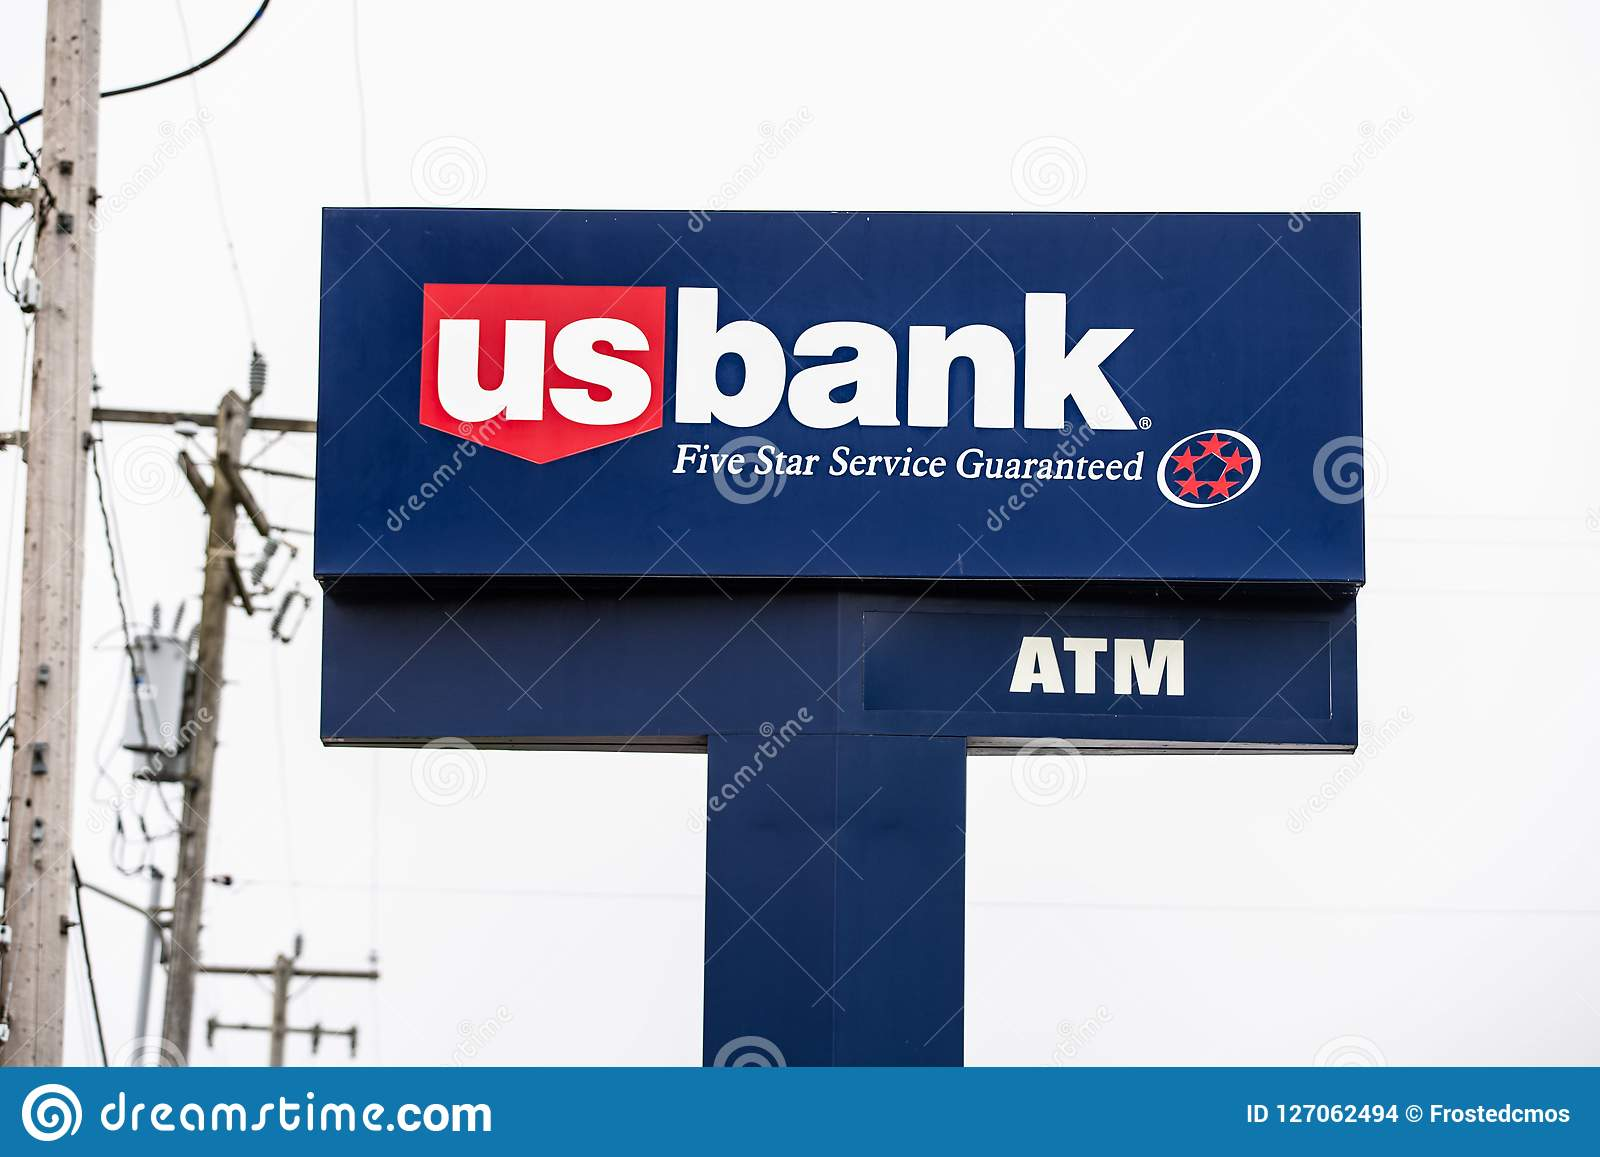 US Bank logo on the banner